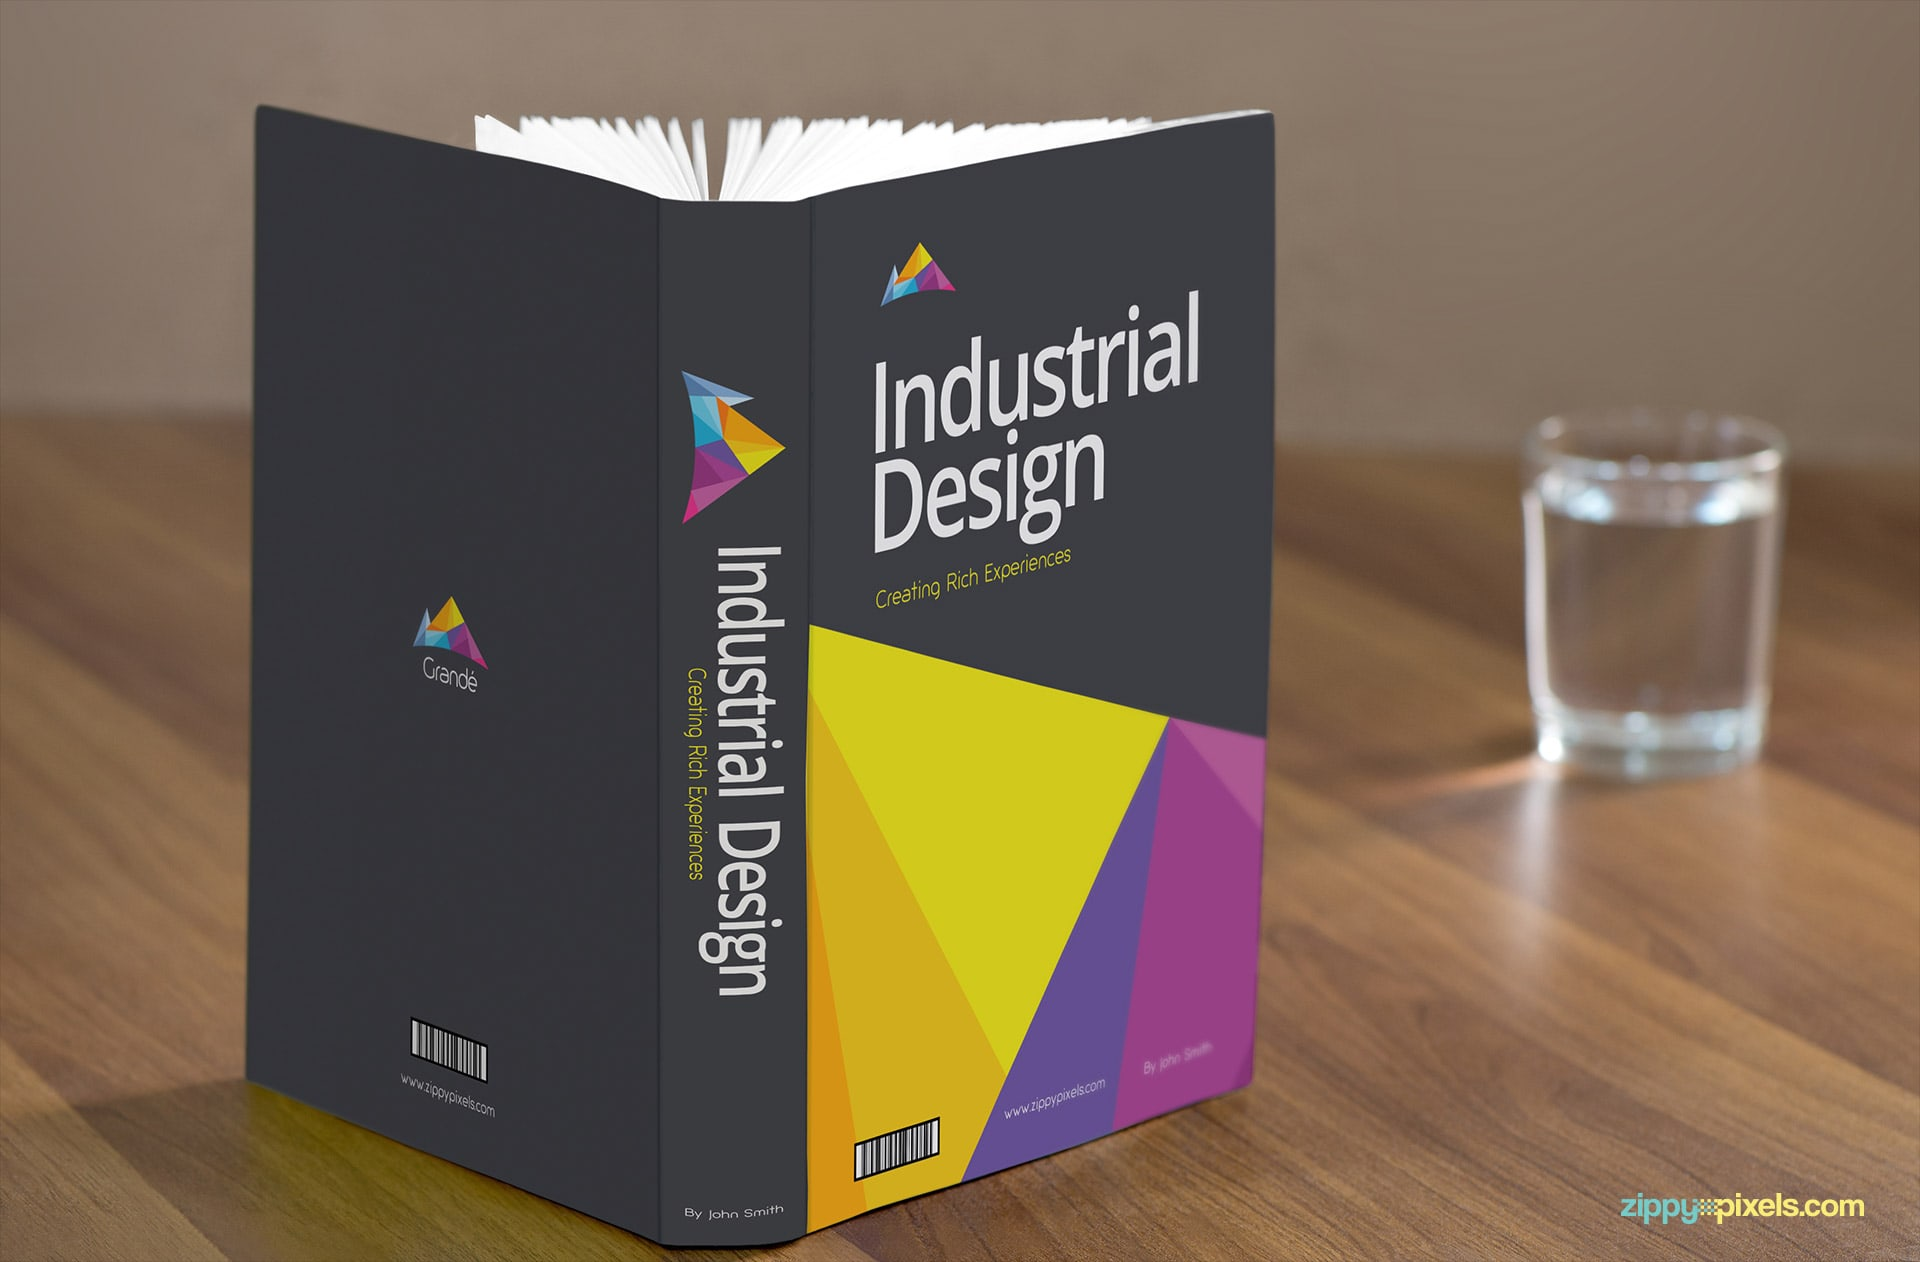 Book Mockup showing Hardcover Book